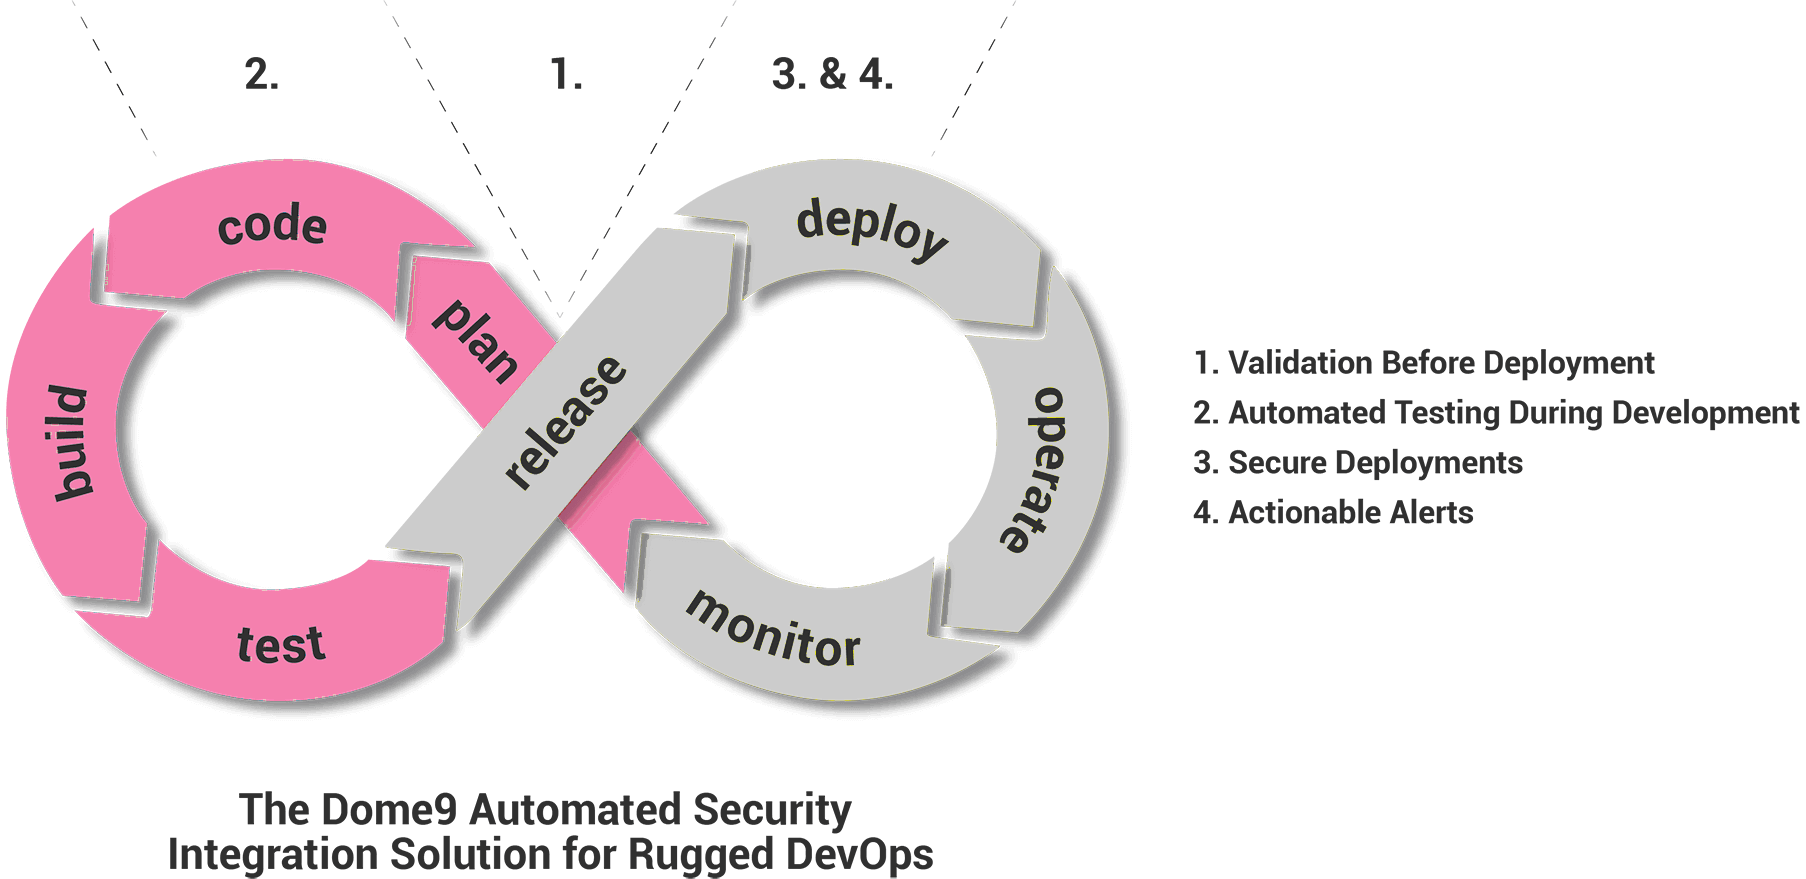 Dome9 Automated Security Integration Solution for Rugged DevOps